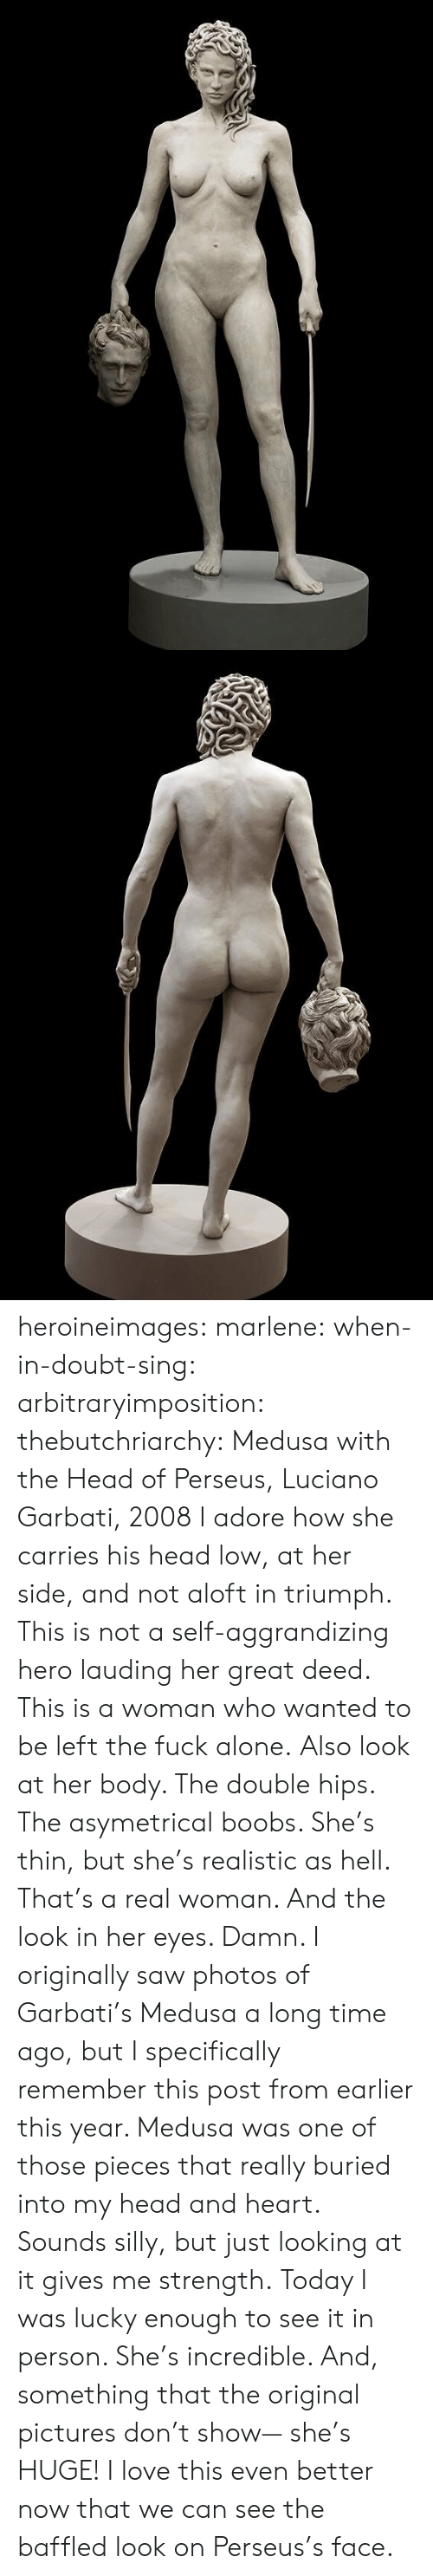 the look: heroineimages:  marlene:  when-in-doubt-sing:  arbitraryimposition:  thebutchriarchy: Medusa with the Head of Perseus, Luciano Garbati, 2008 I adore how she carries his head low, at her side, and not aloft in triumph.  This is not a self-aggrandizing hero lauding her great deed. This is a woman who wanted to be left the fuck alone.   Also look at her body. The double hips. The asymetrical boobs. She's thin, but she's realistic as hell. That's a real woman.  And the look in her eyes. Damn.   I originally saw photos of Garbati's Medusa a long time ago, but I specifically remember this post from earlier this year. Medusa was one of those pieces that really buried into my head and heart. Sounds silly, but just looking at it gives me strength. Today I was lucky enough to see it in person. She's incredible. And, something that the original pictures don't show— she's HUGE!    I love this even better now that we can see the baffled look on Perseus's face.